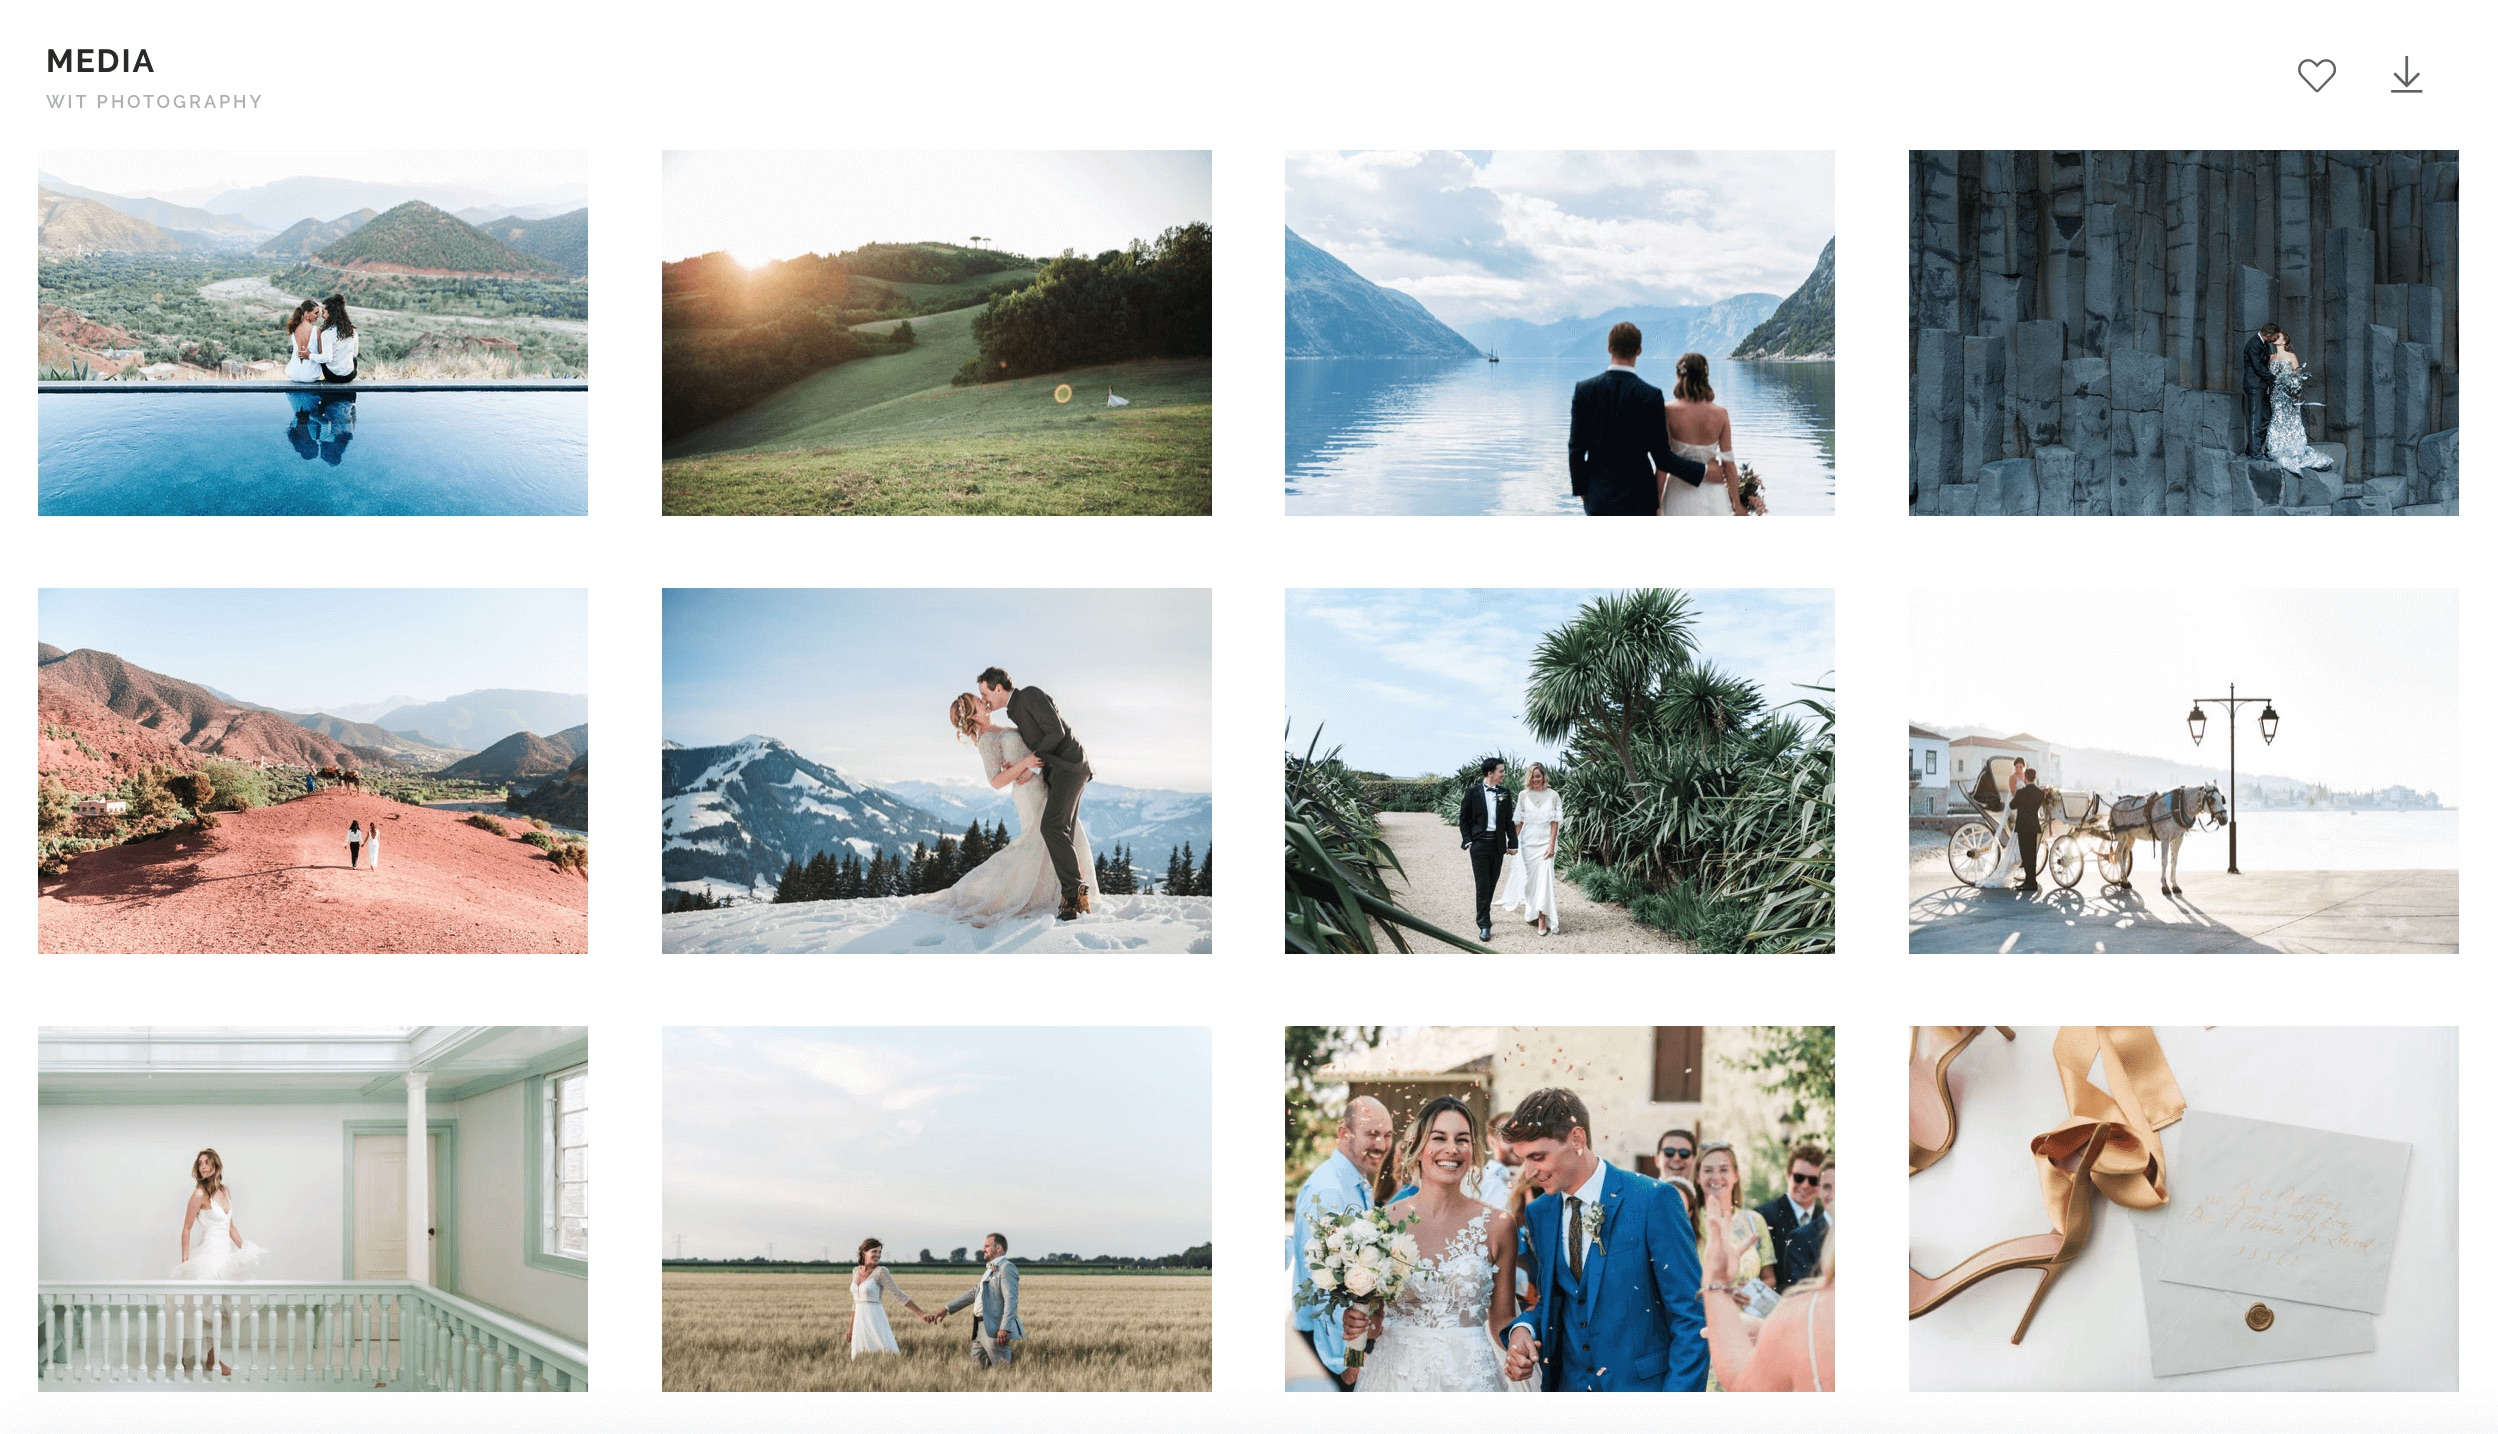 Online gallery for press and media contacts who write and interview about destination weddings, elopements, wedding photography and travel